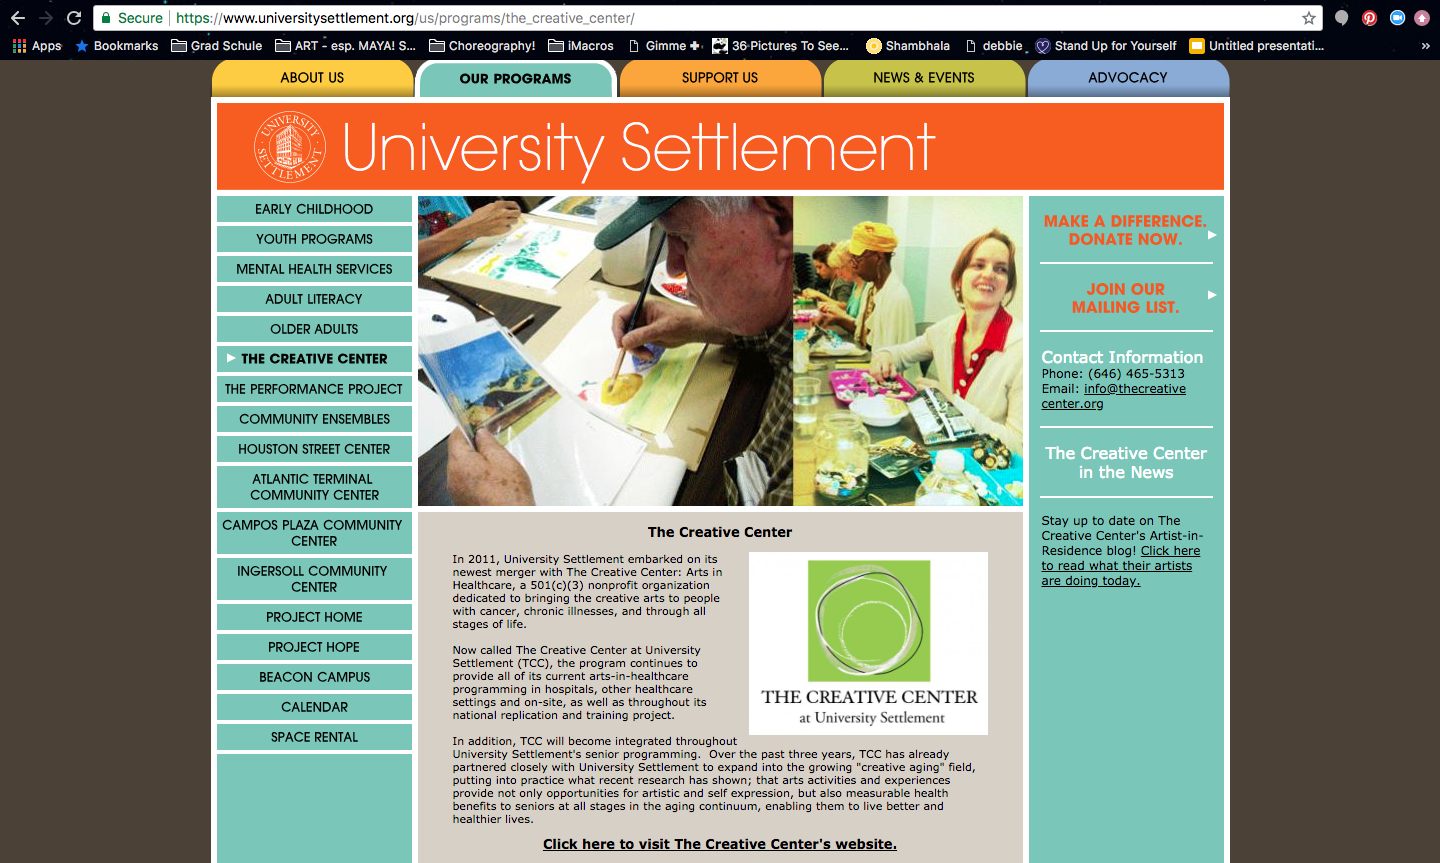 University Settlement website 'Our Programs' page. The clients were concerned that the site had too many links, outdated content, and was confusing for their target users: recipients of the Settlement's services and prospective donors.